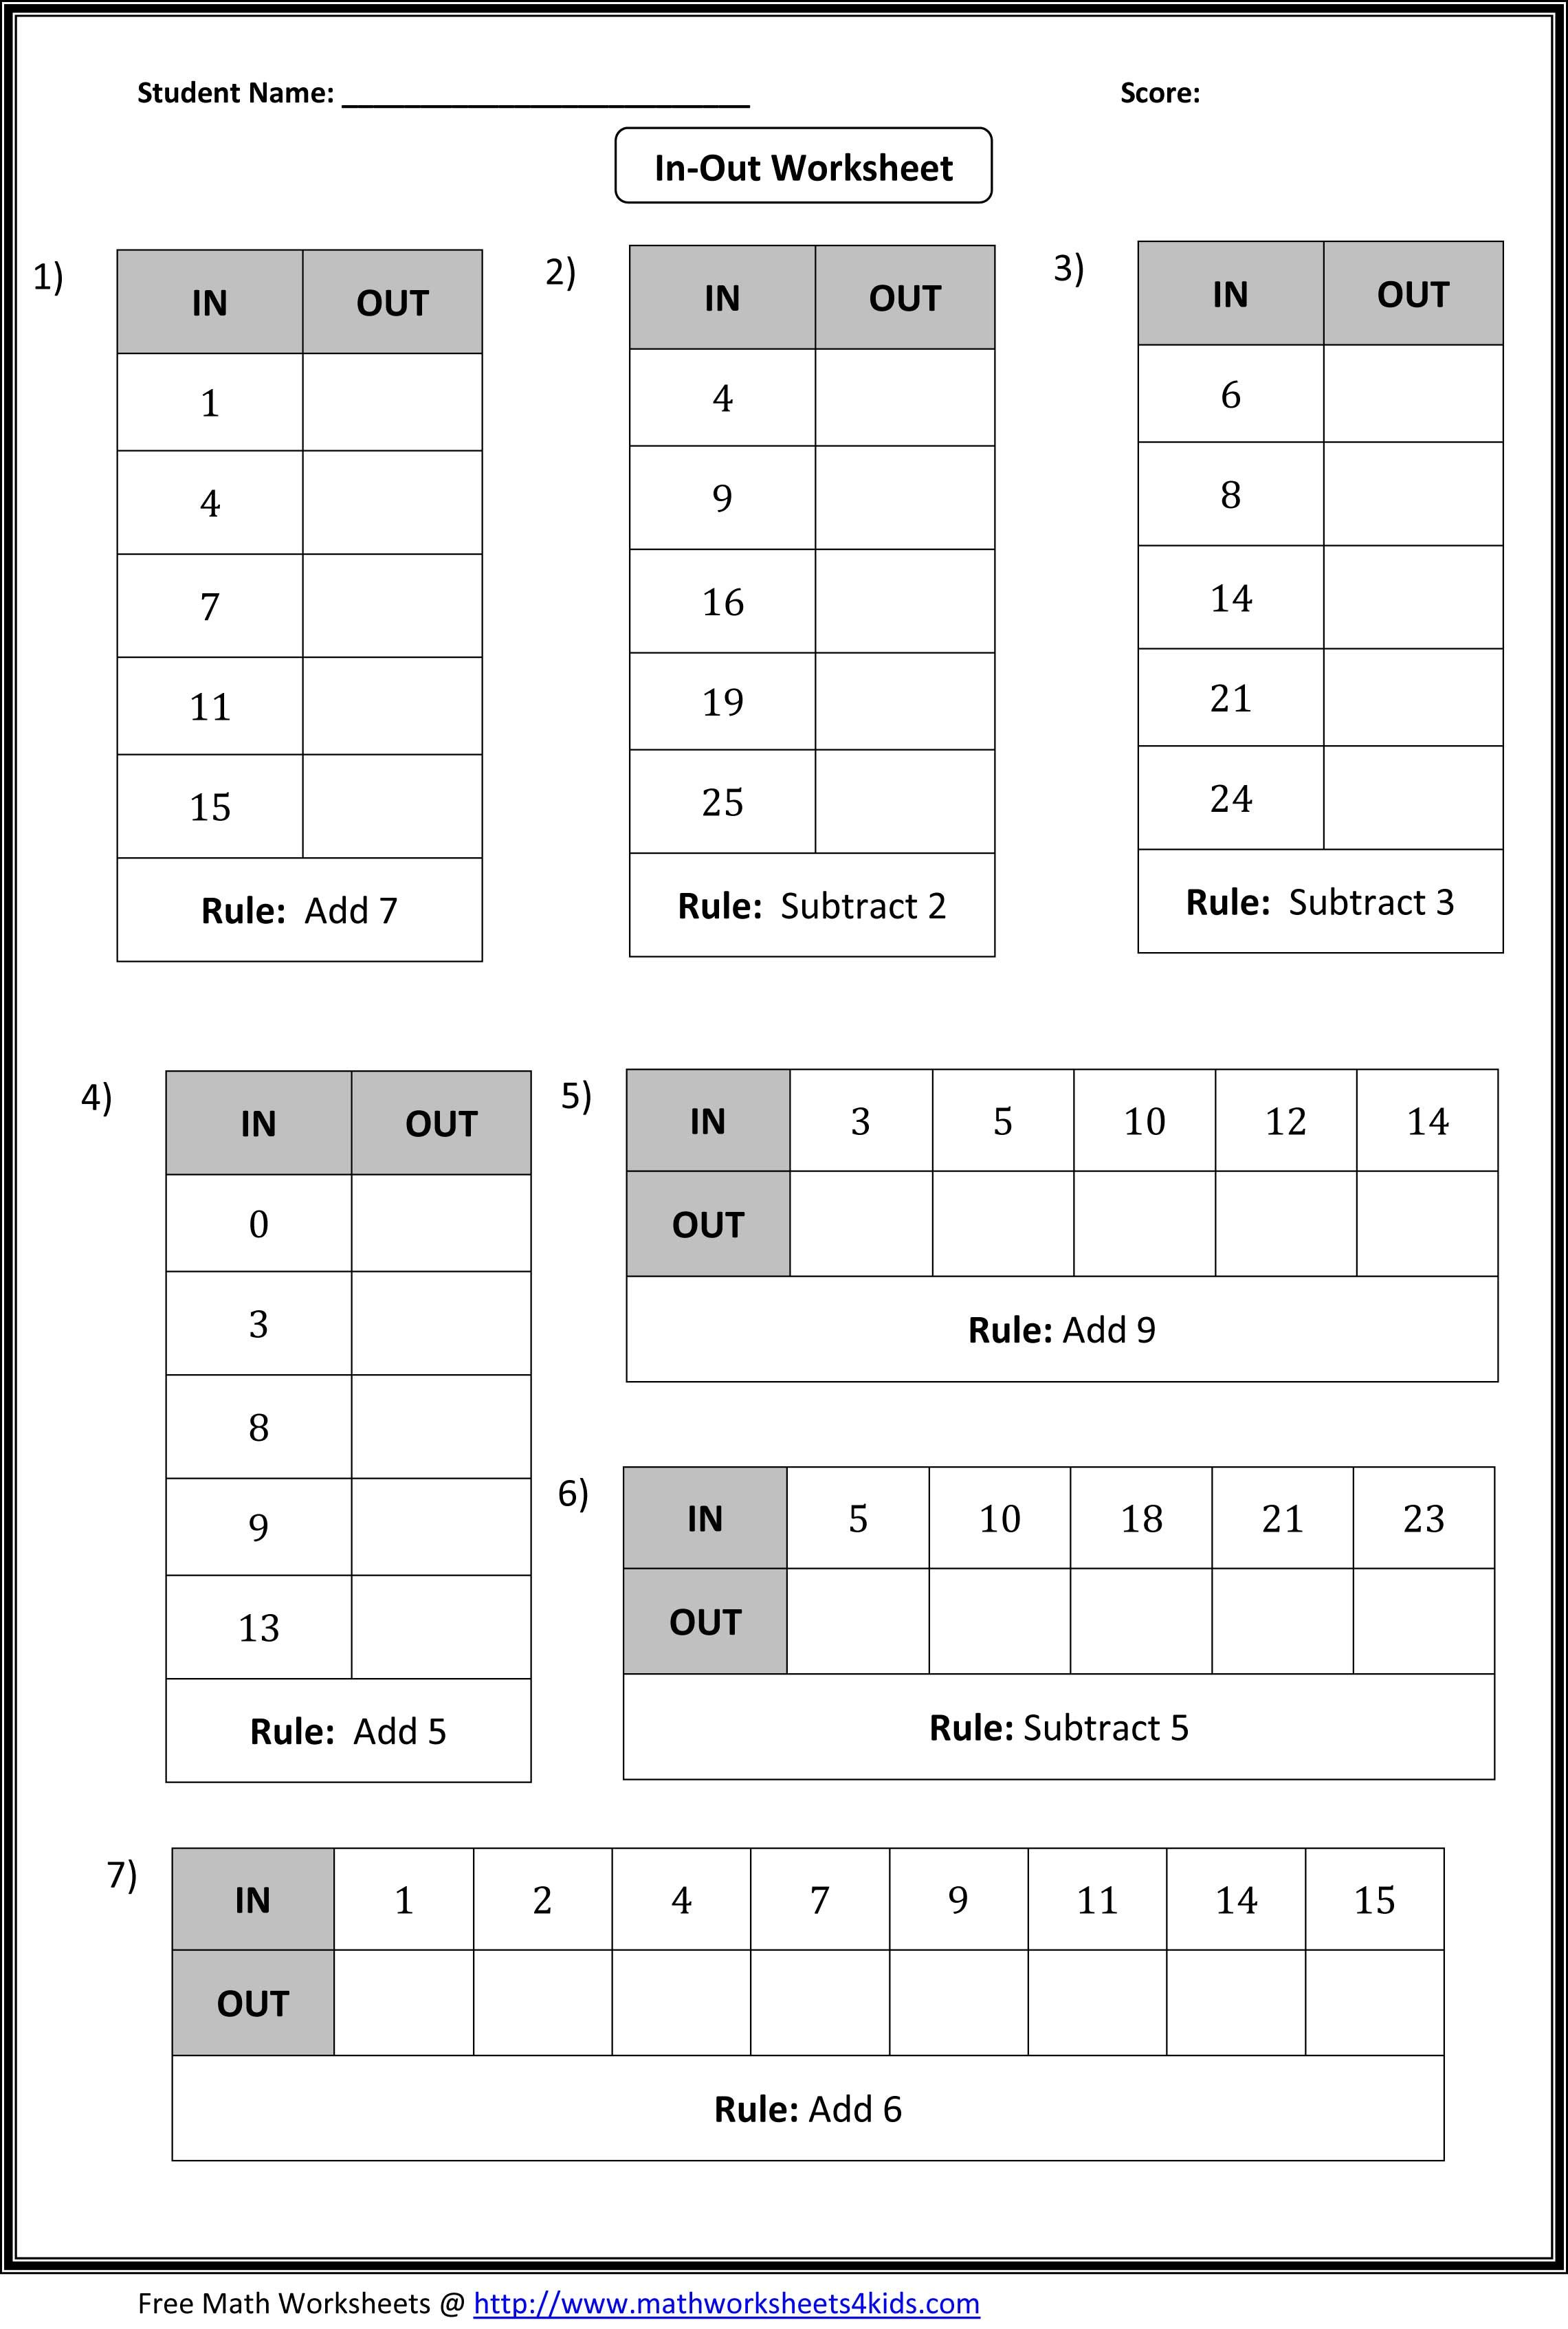 Free Worksheet Input Output Worksheets function table worksheets in and out boxes include two columns input output followed by a rule fill the missing entries or identify rule